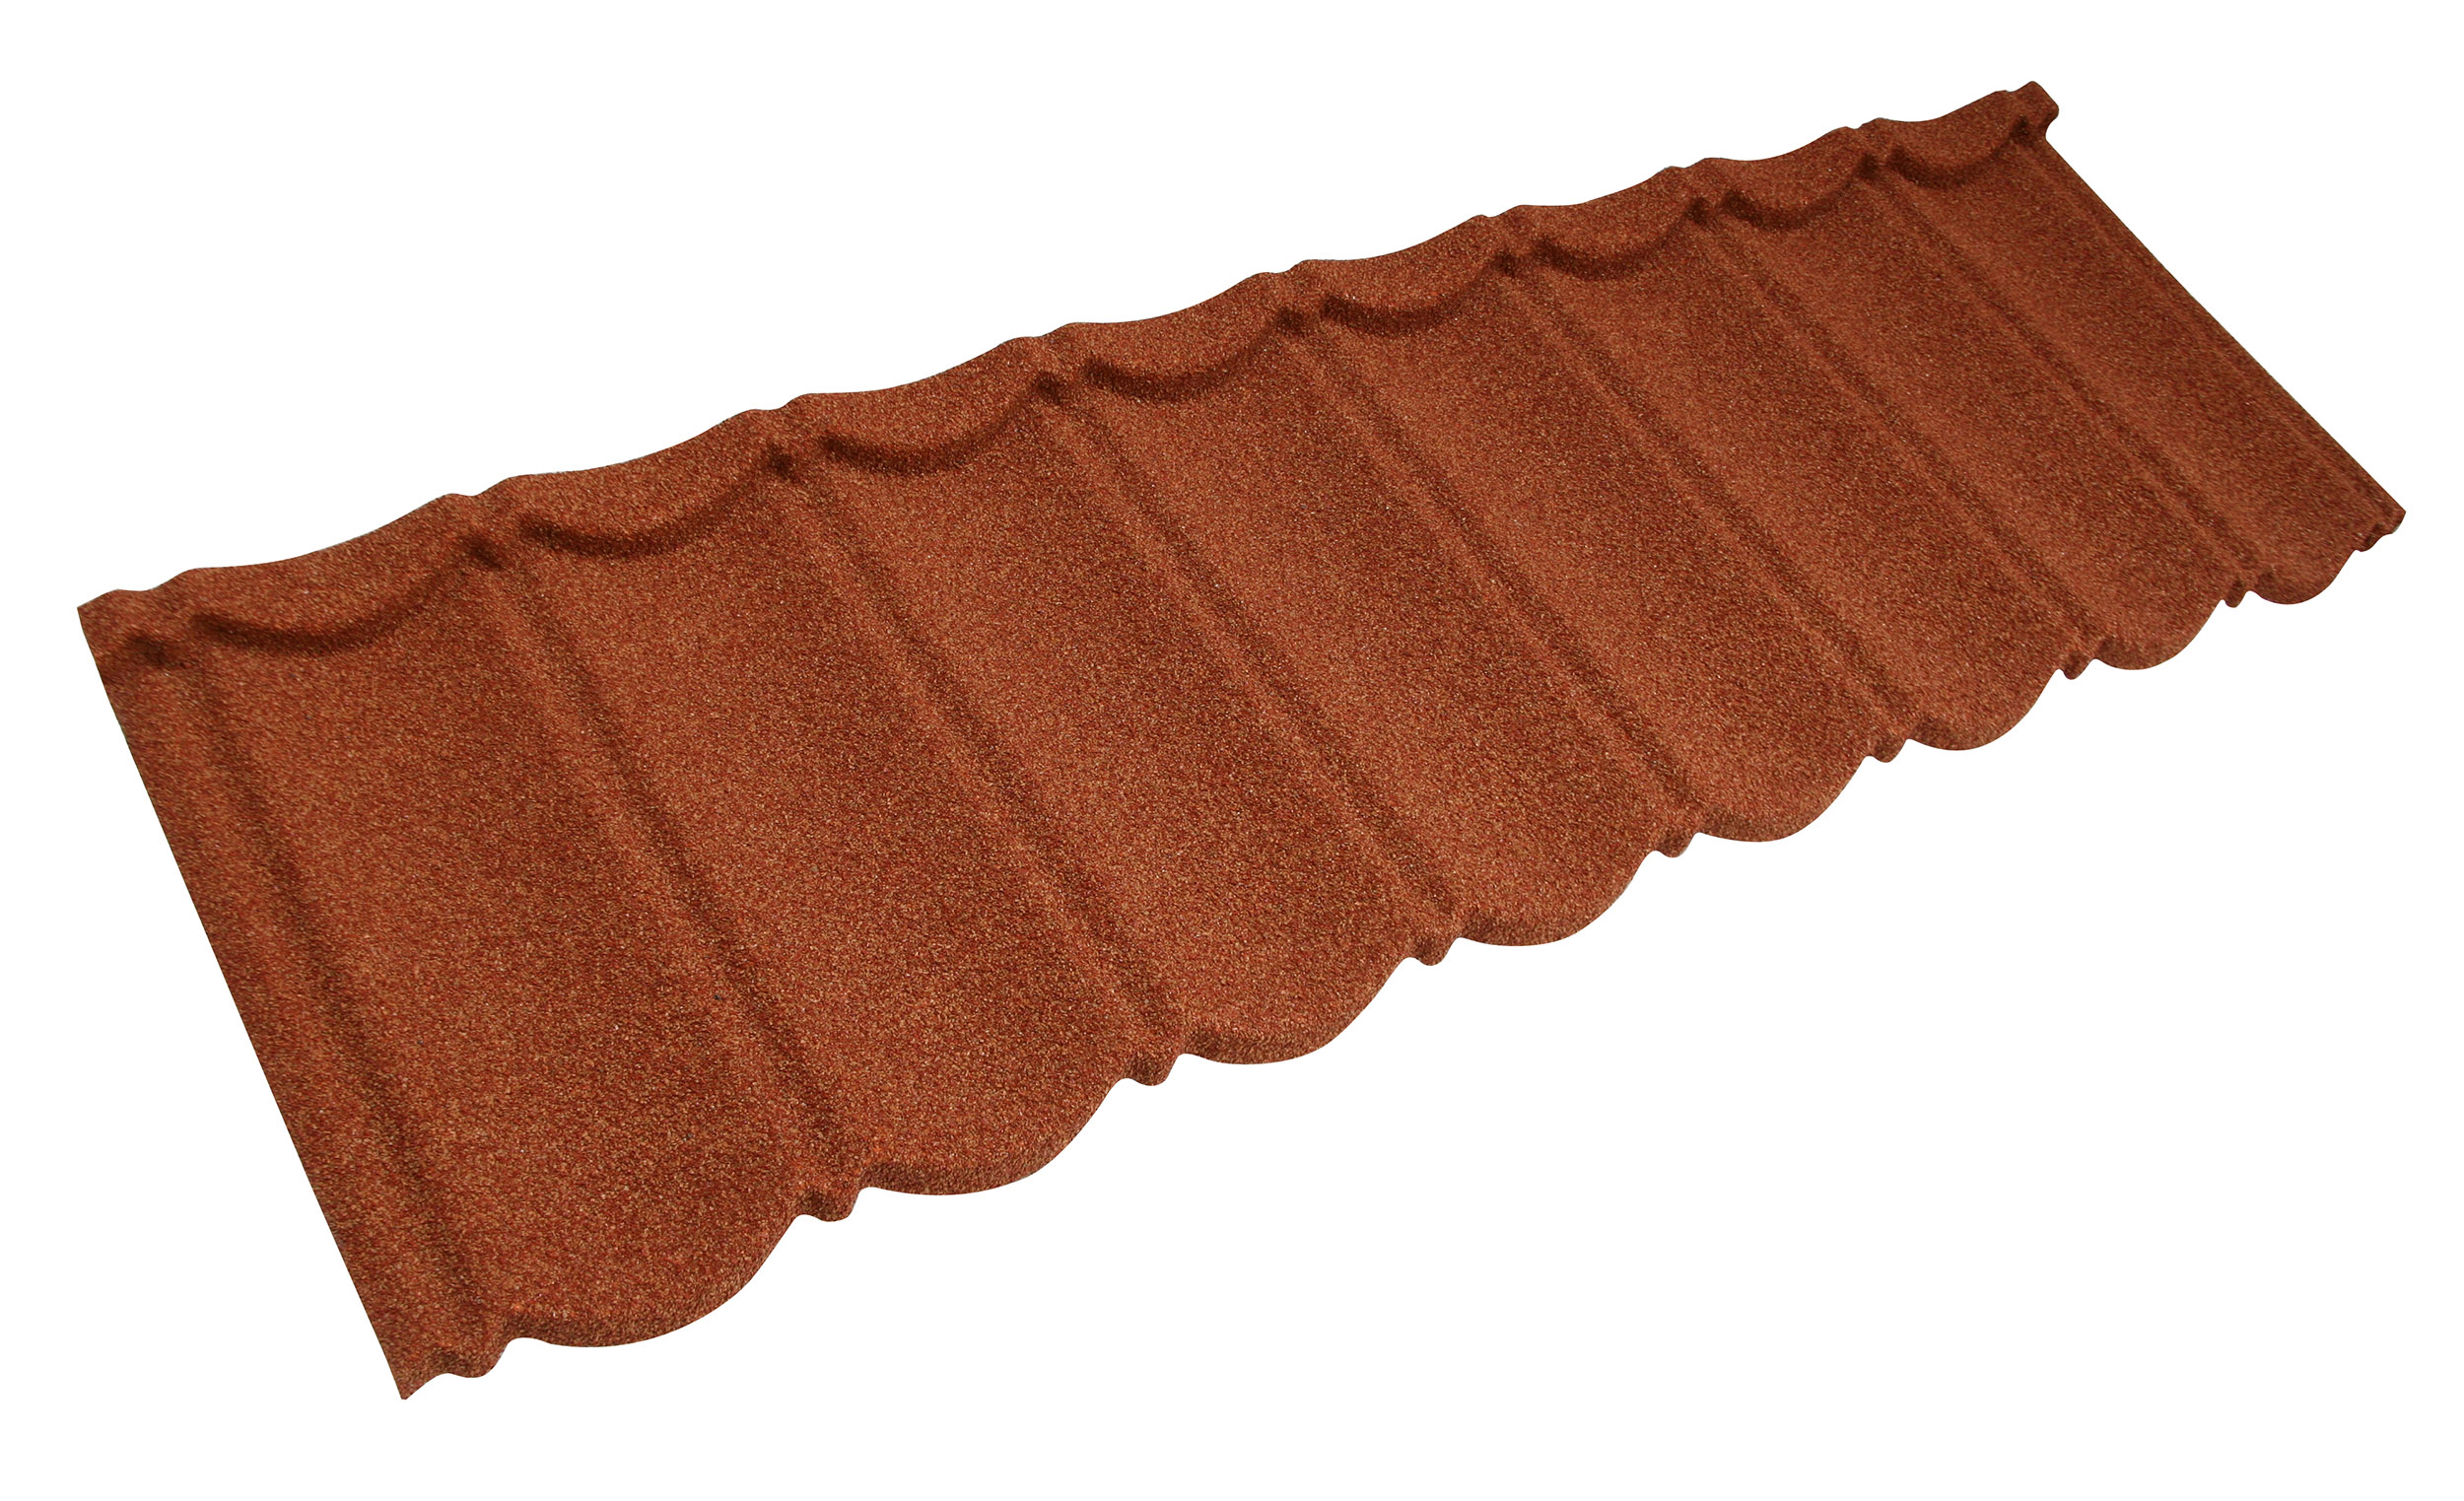 Metrotile Bond Lightweight Roofing Tile Profile in Terracotta